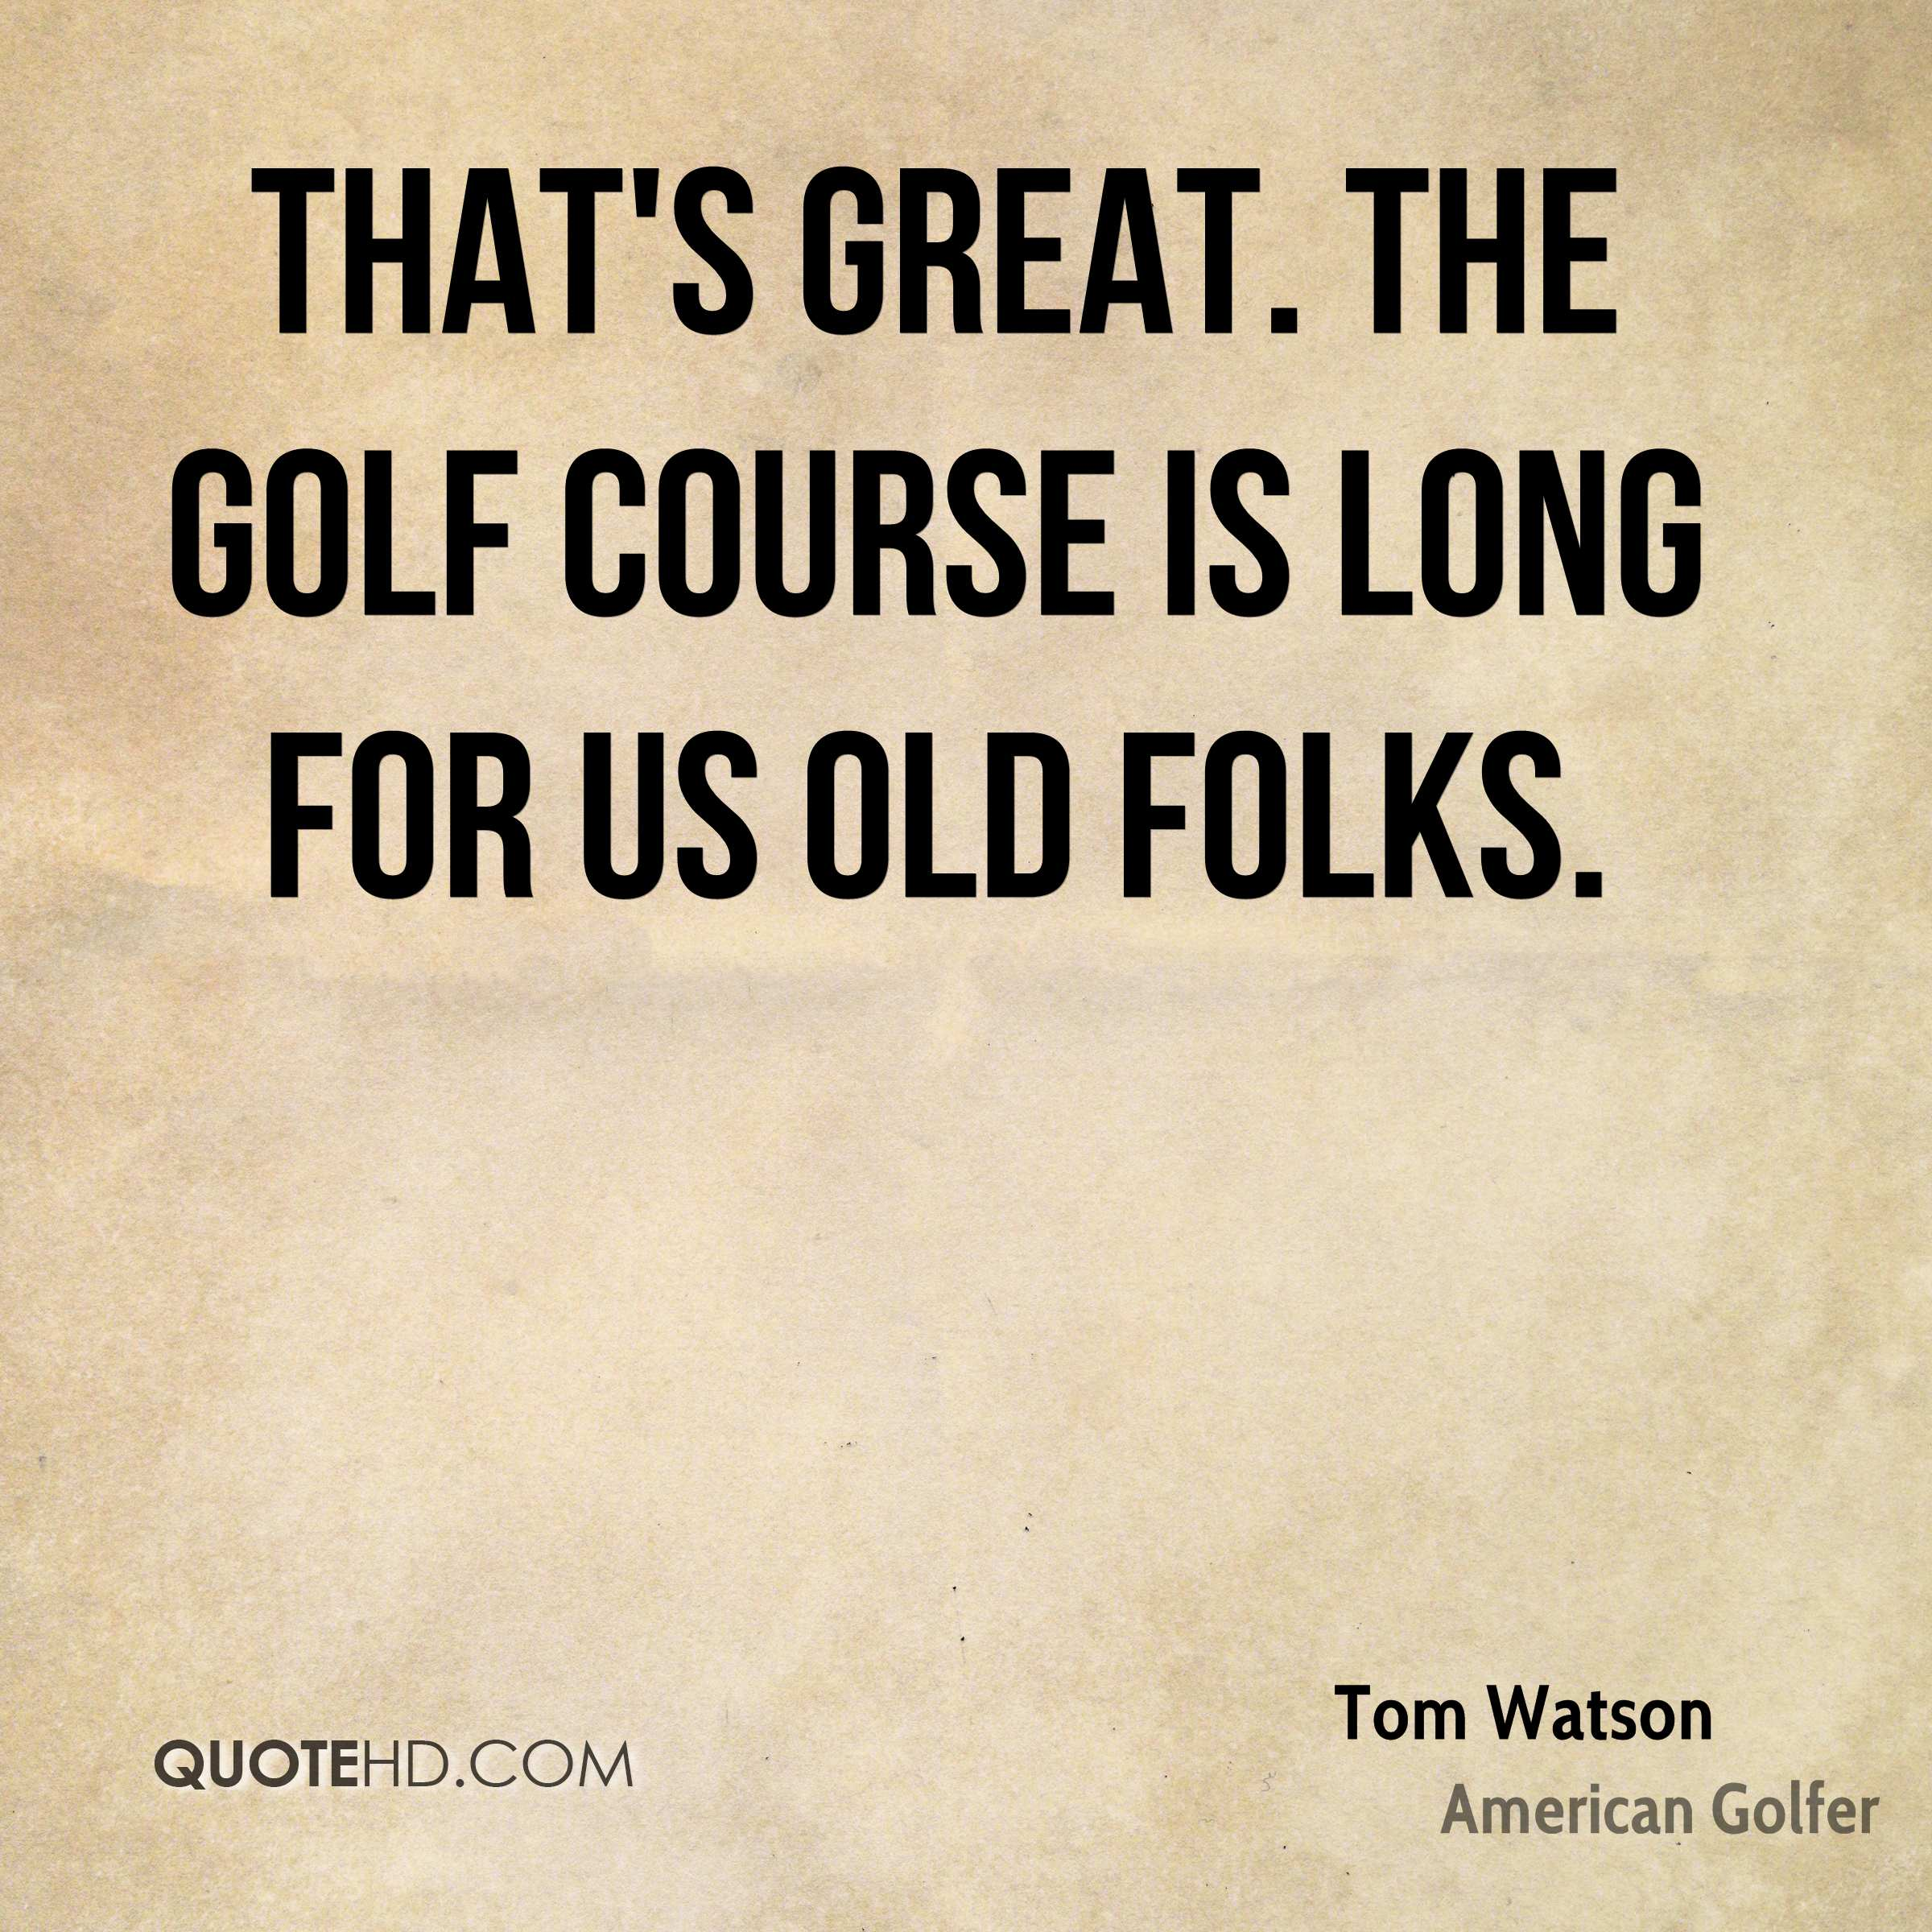 That's great. The golf course is long for us old folks.